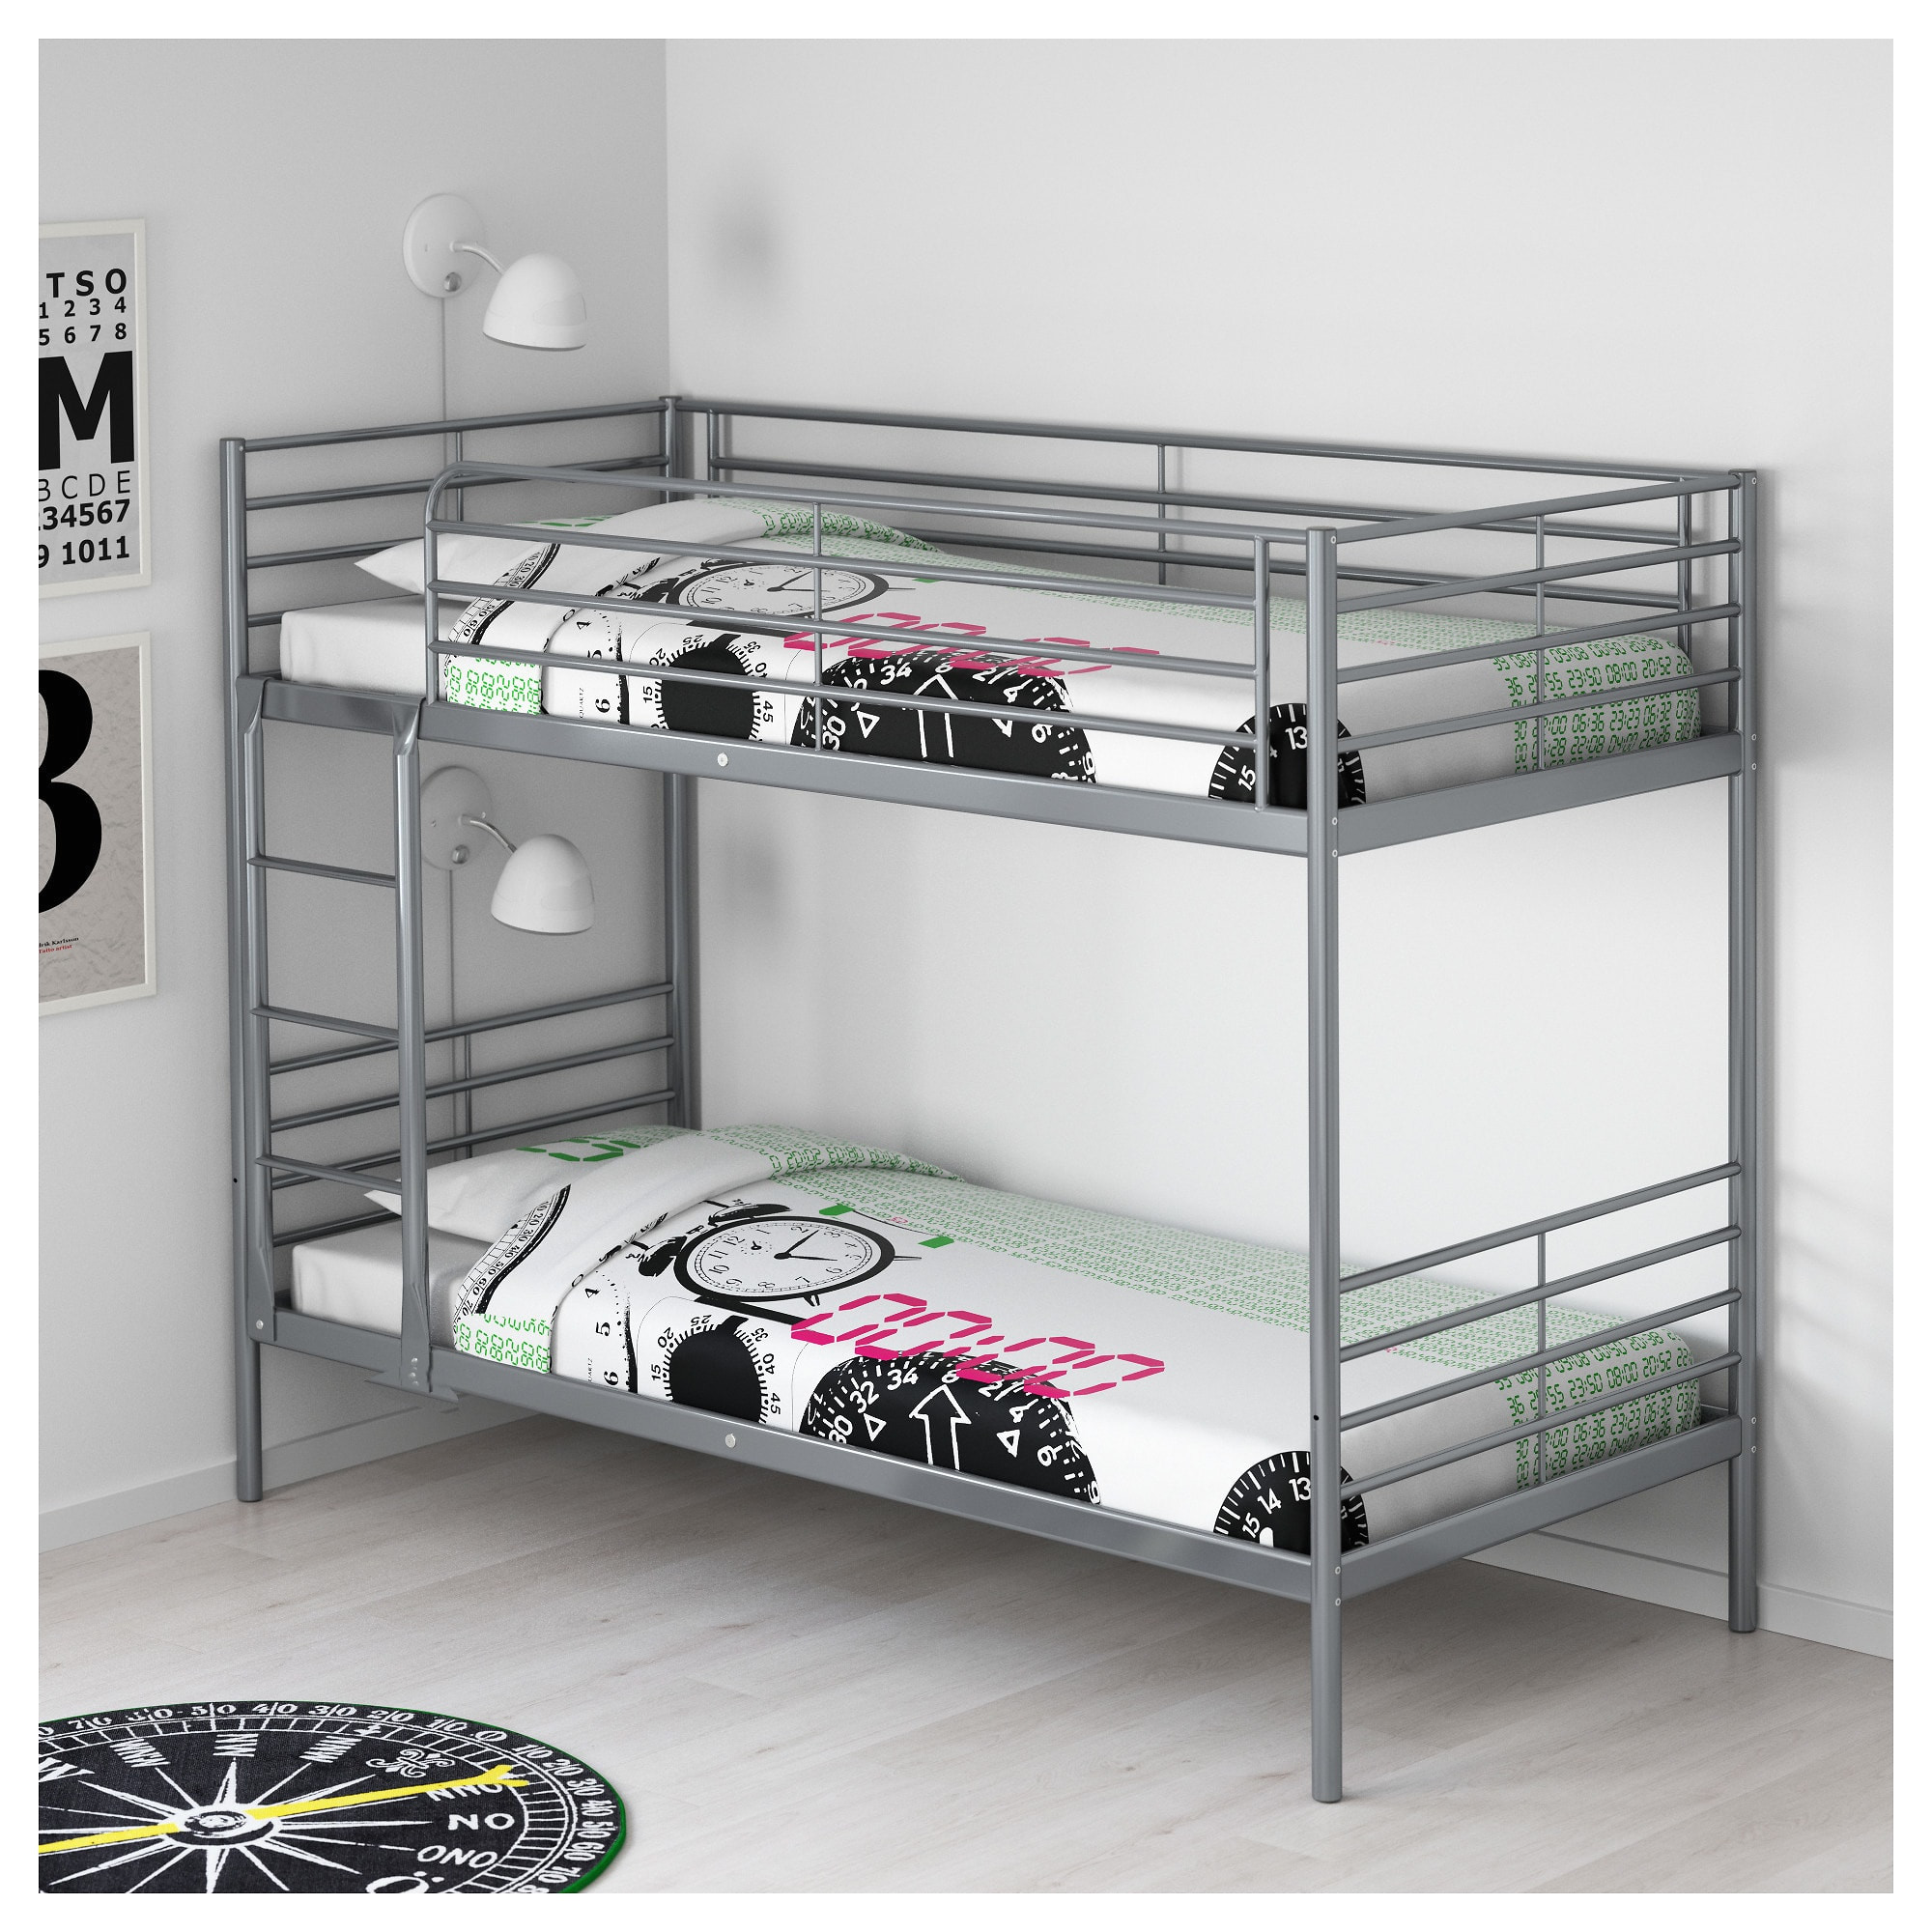 Ikea Bunk Bed assembly Instructions Pdf | AdinaPorter